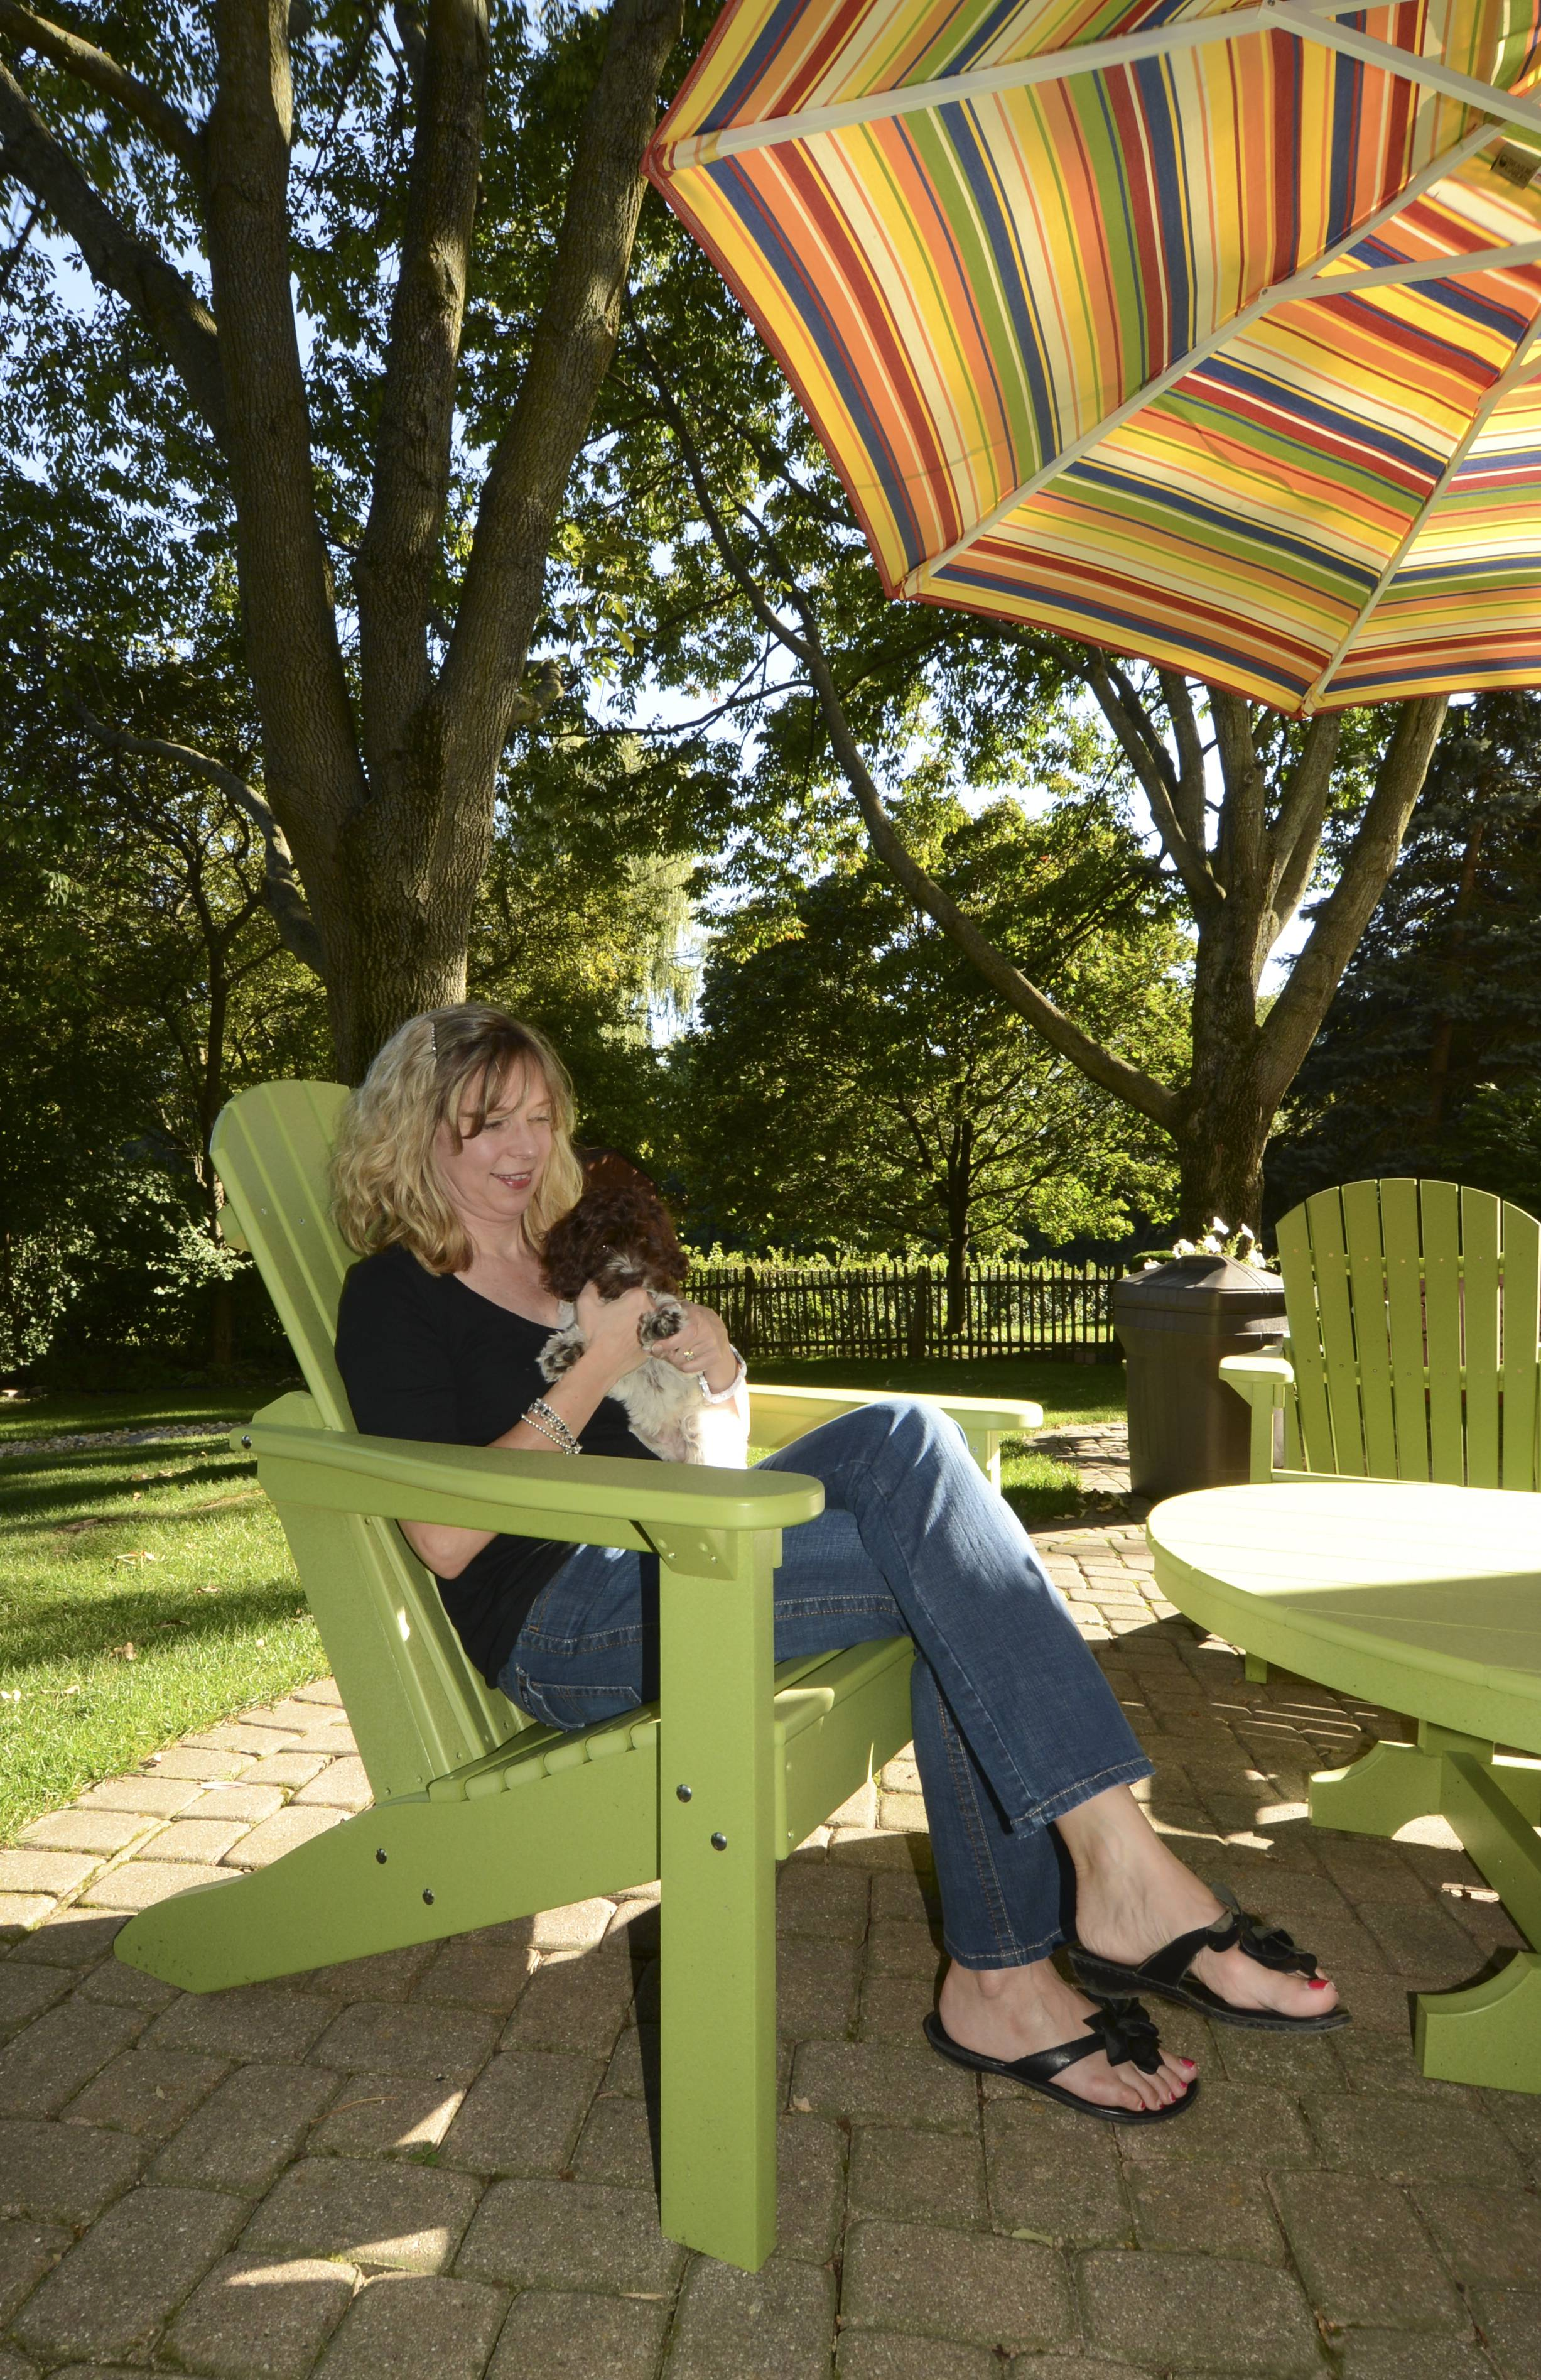 Rose Waber of Wheaton and her puppy, Sadie, enjoy a new Adirondack chair patio set from Hearth and Home in Mount Prospect.